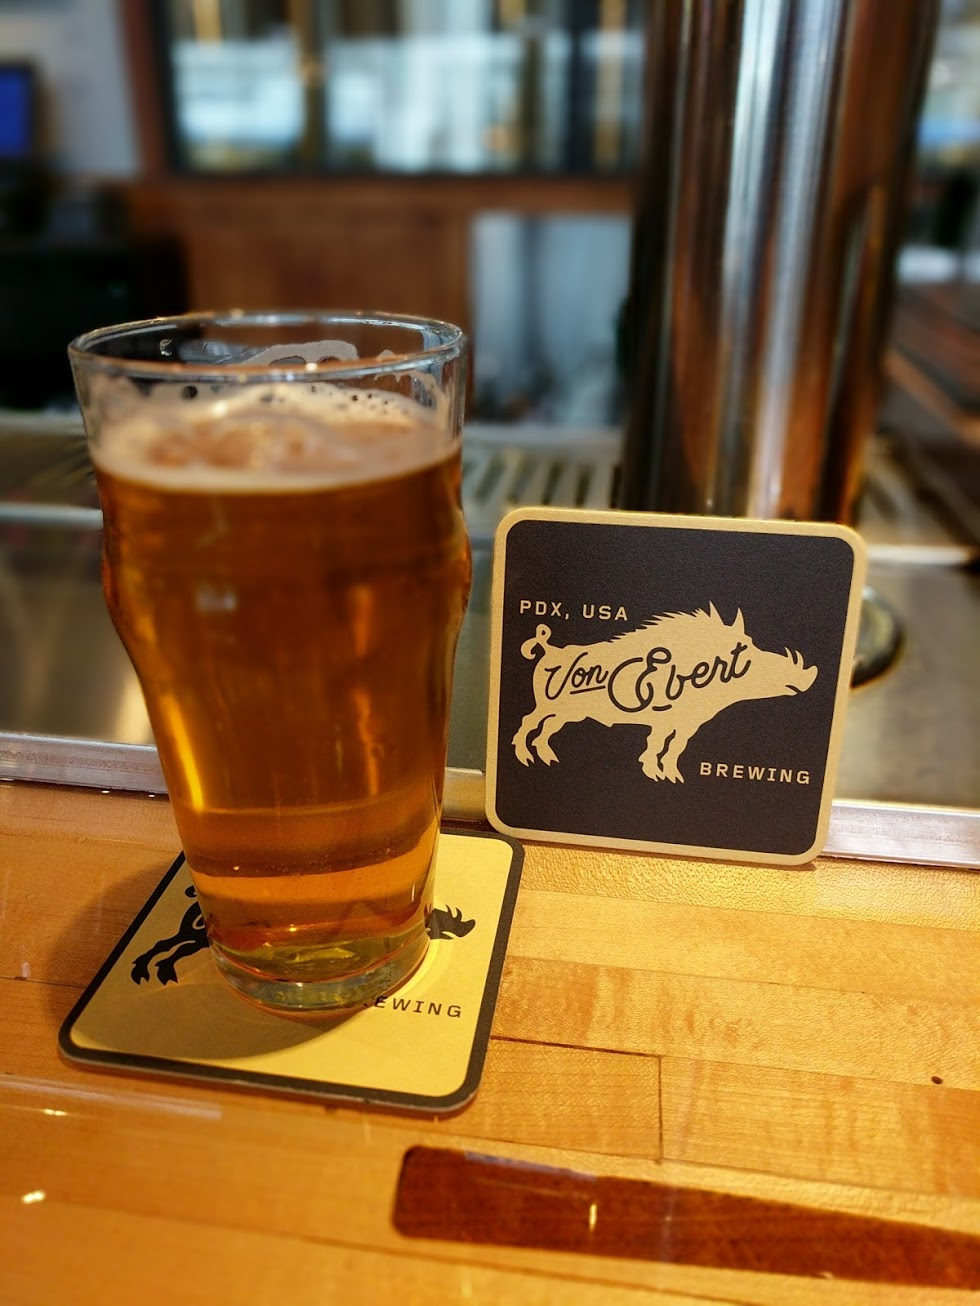 A pint at the new Von Ebert Brewing. (photo by Nick Rivers)